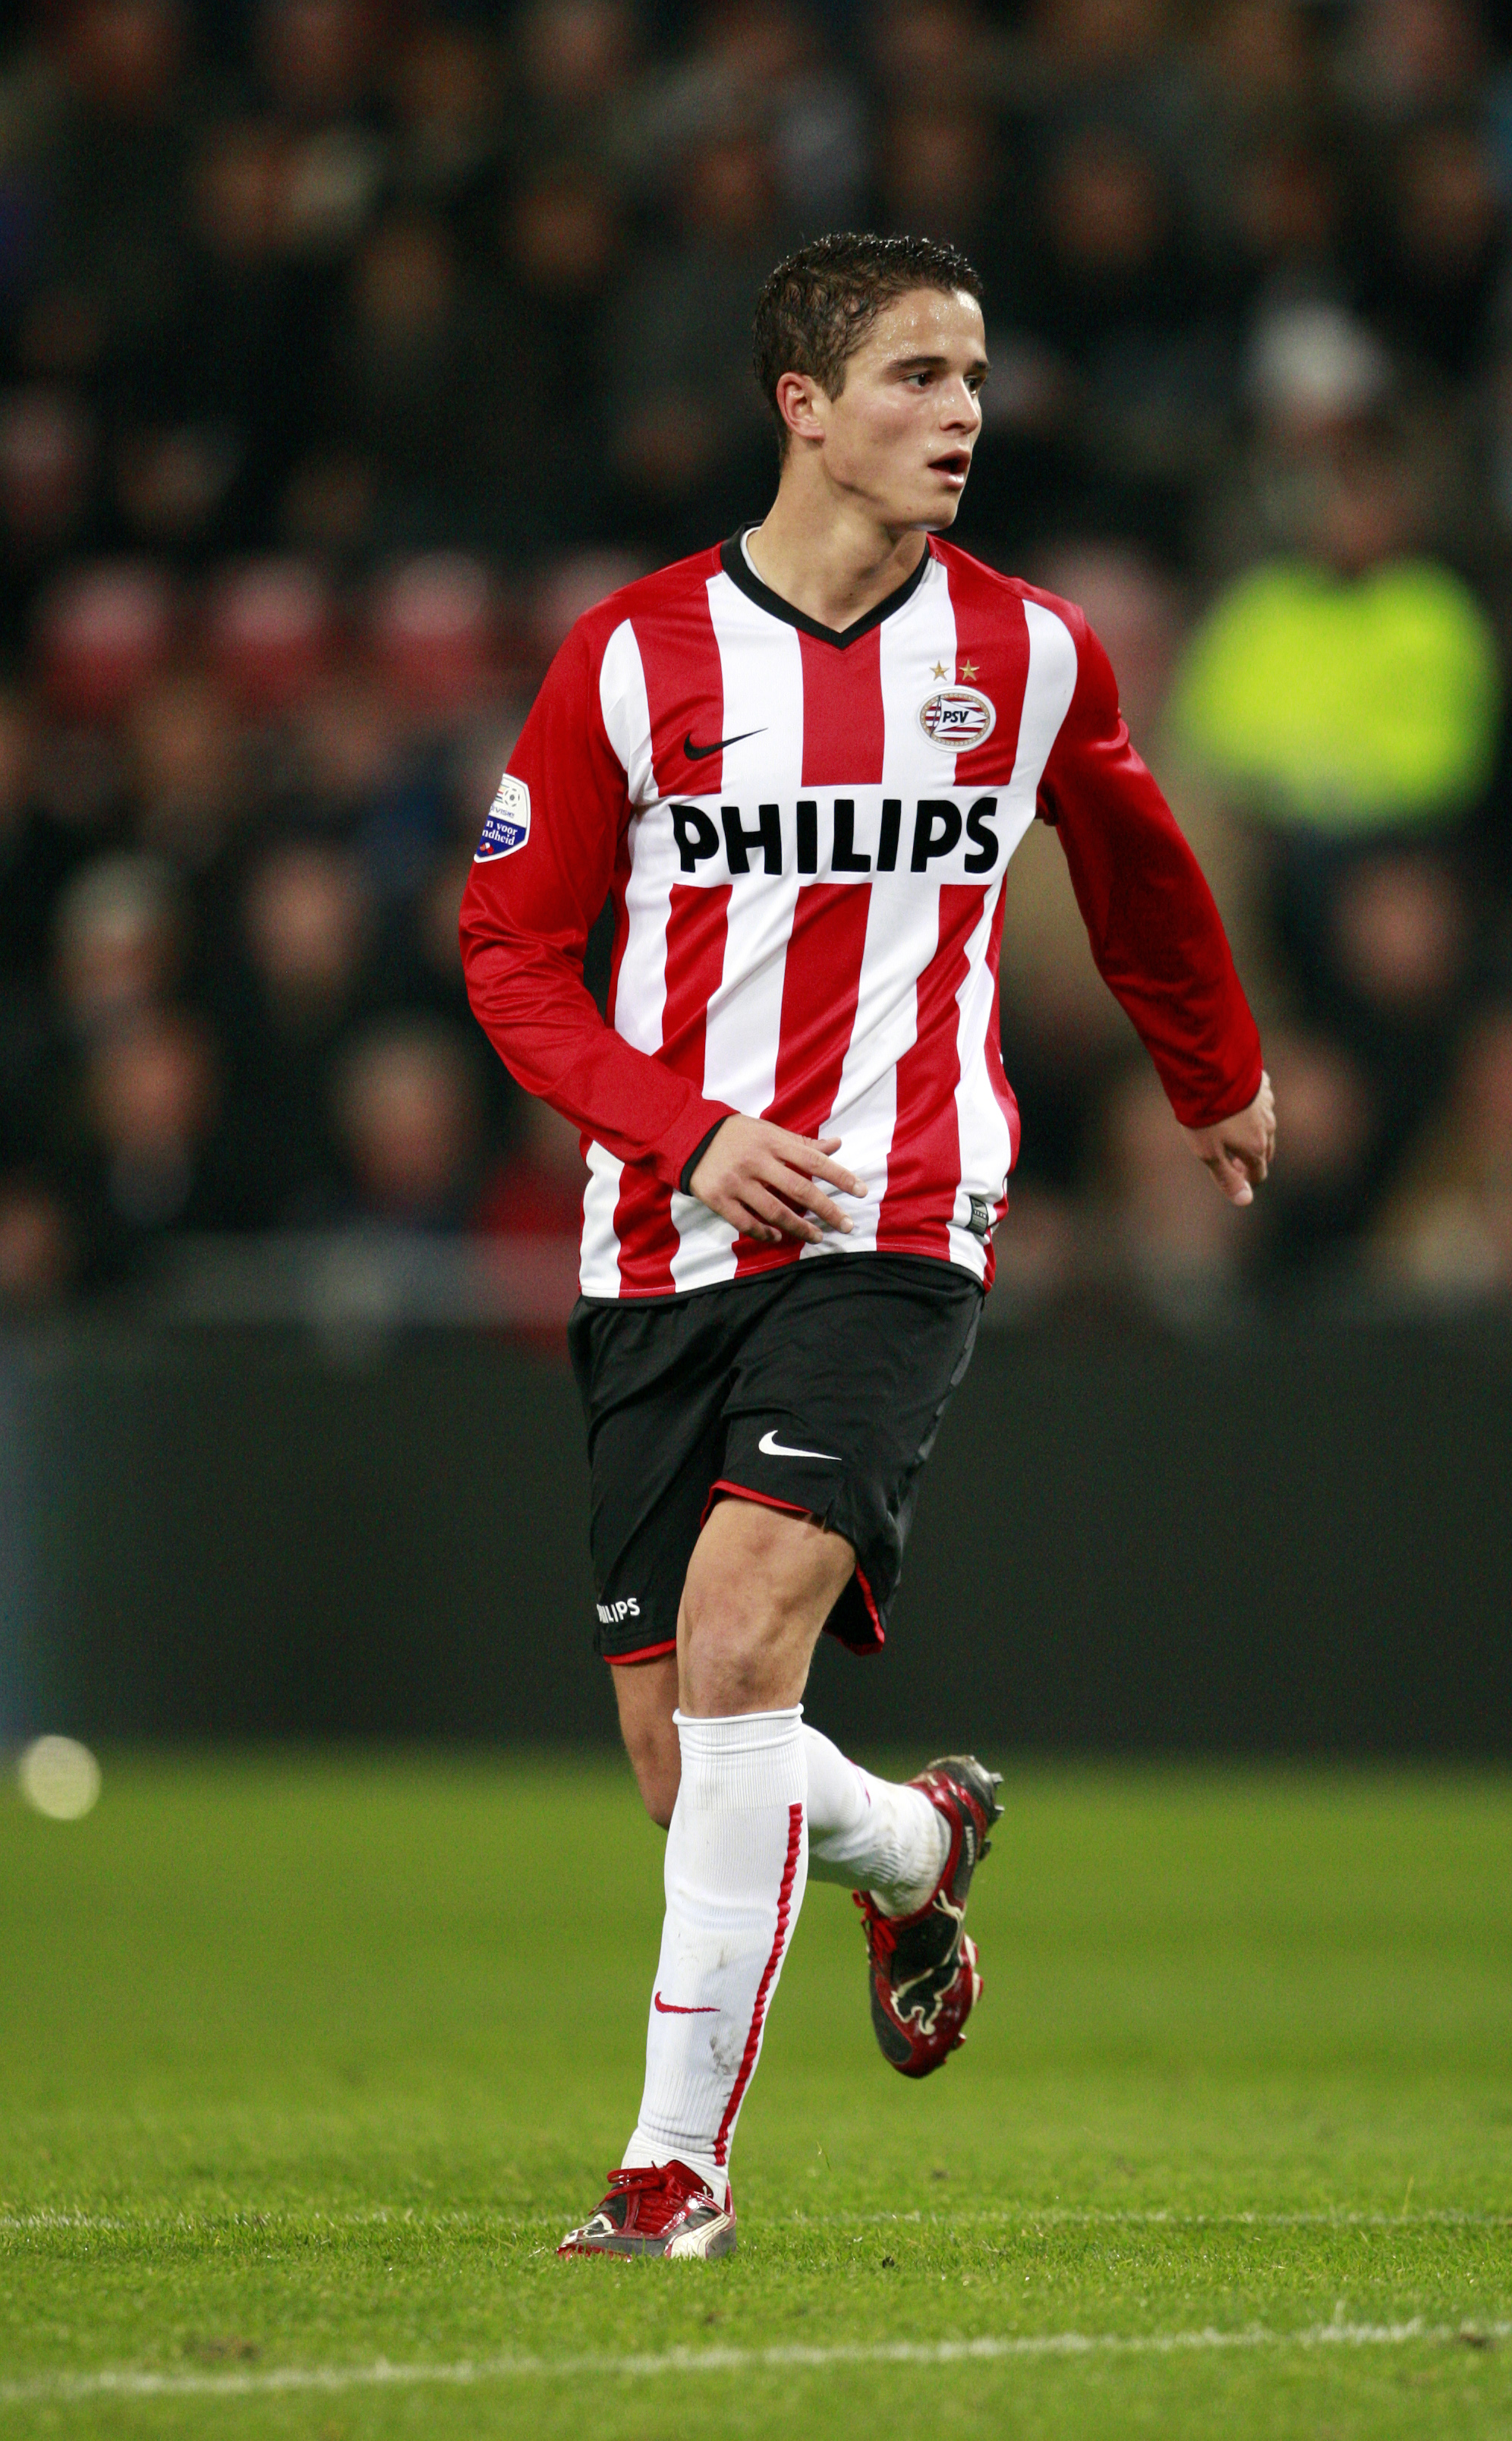 EINDHOVEN, NETHERLANDS - OCTOBER 31:  Ibrahim Afellay of PSV Eindhoven during the Eredivisie match between PSV Eindhoven and Vitesse held on October 31, 2009 at the Philips Stadion, in Eindhoven, Netherlands. (Photo by Anoek De Groot/EuroFootball/Getty Im